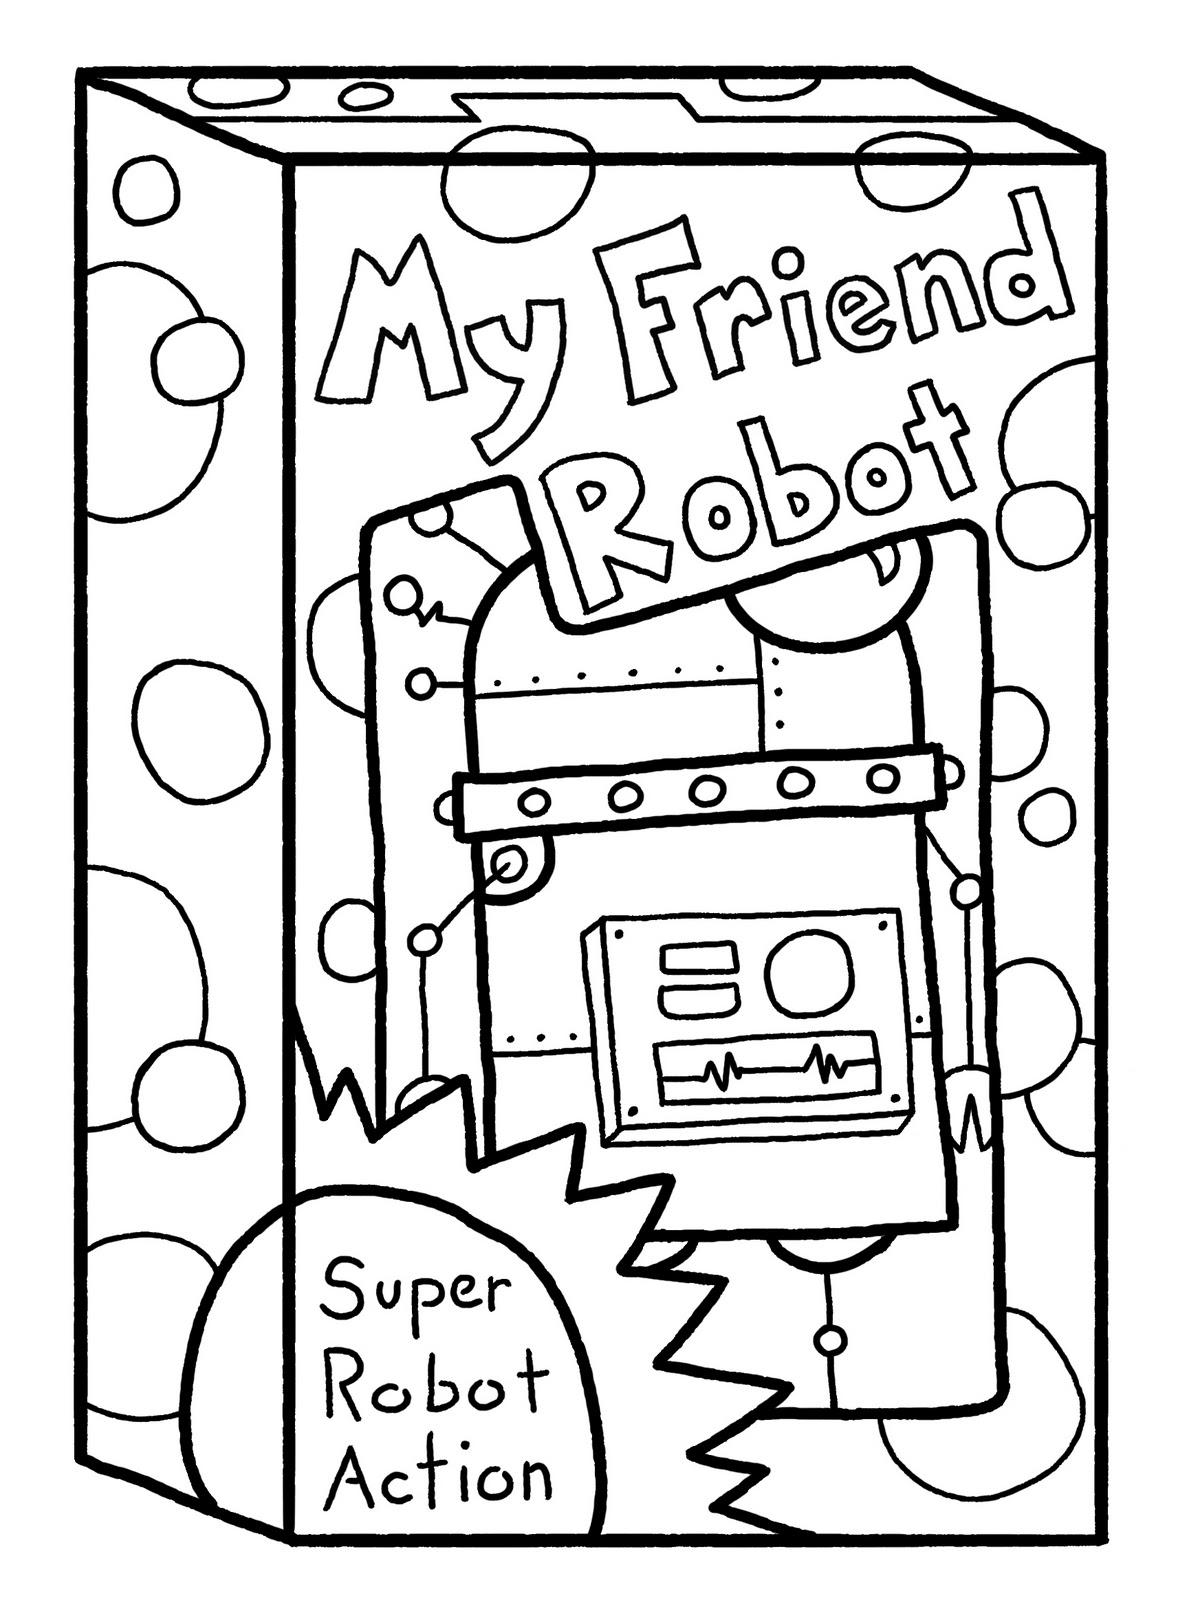 coloring pages 28 october attack - photo#31